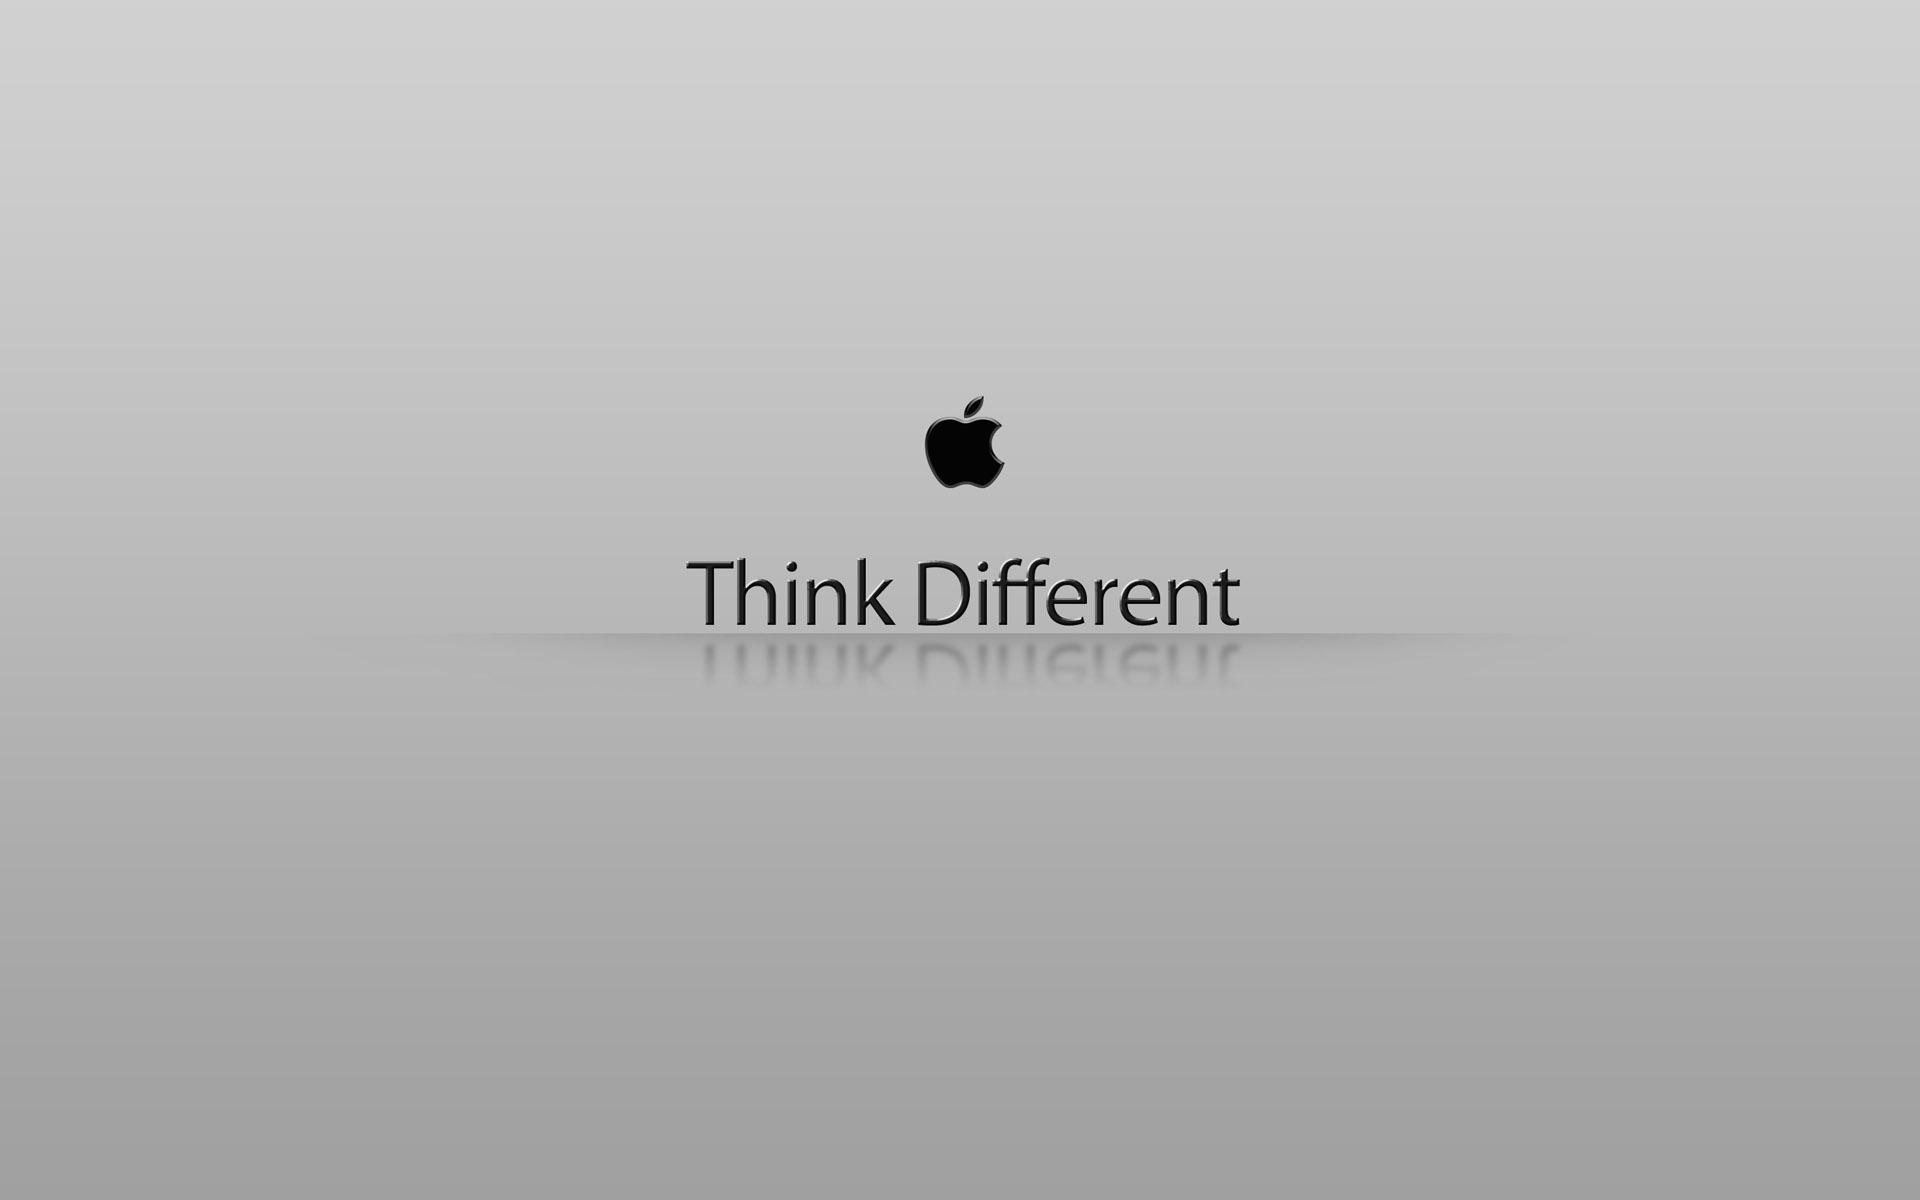 ... apple wallpaper background 2 ...